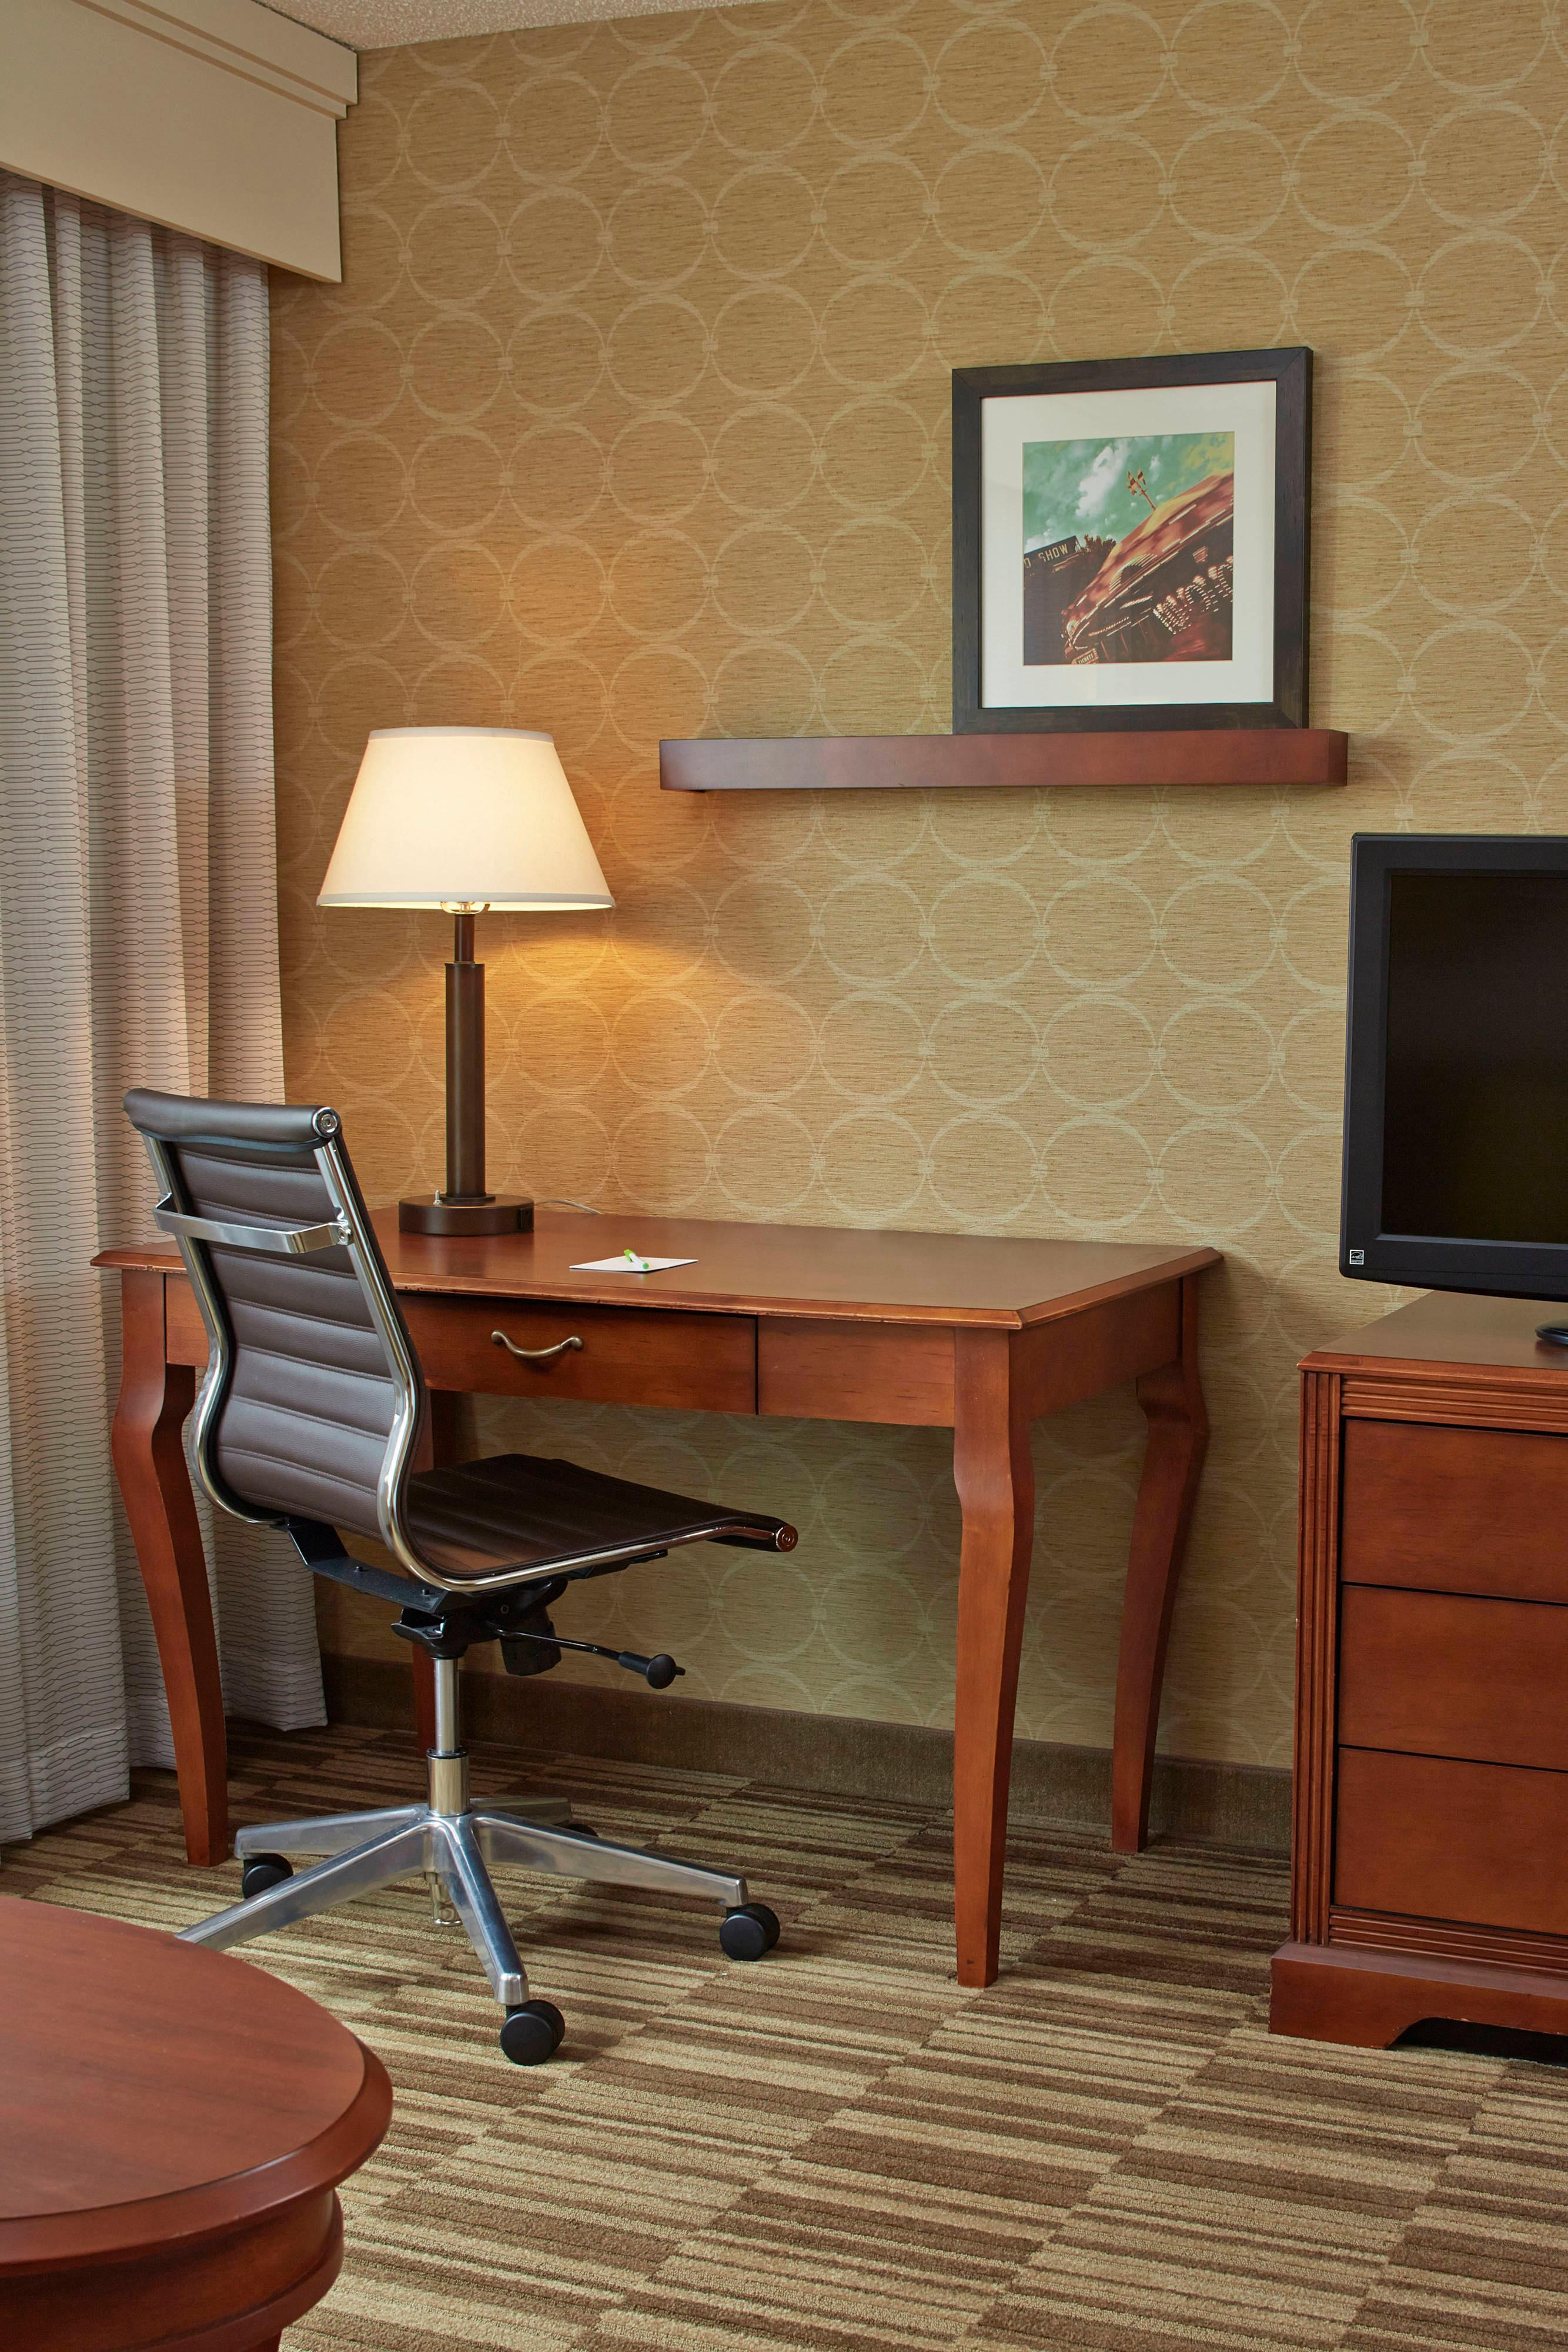 In-room work stations